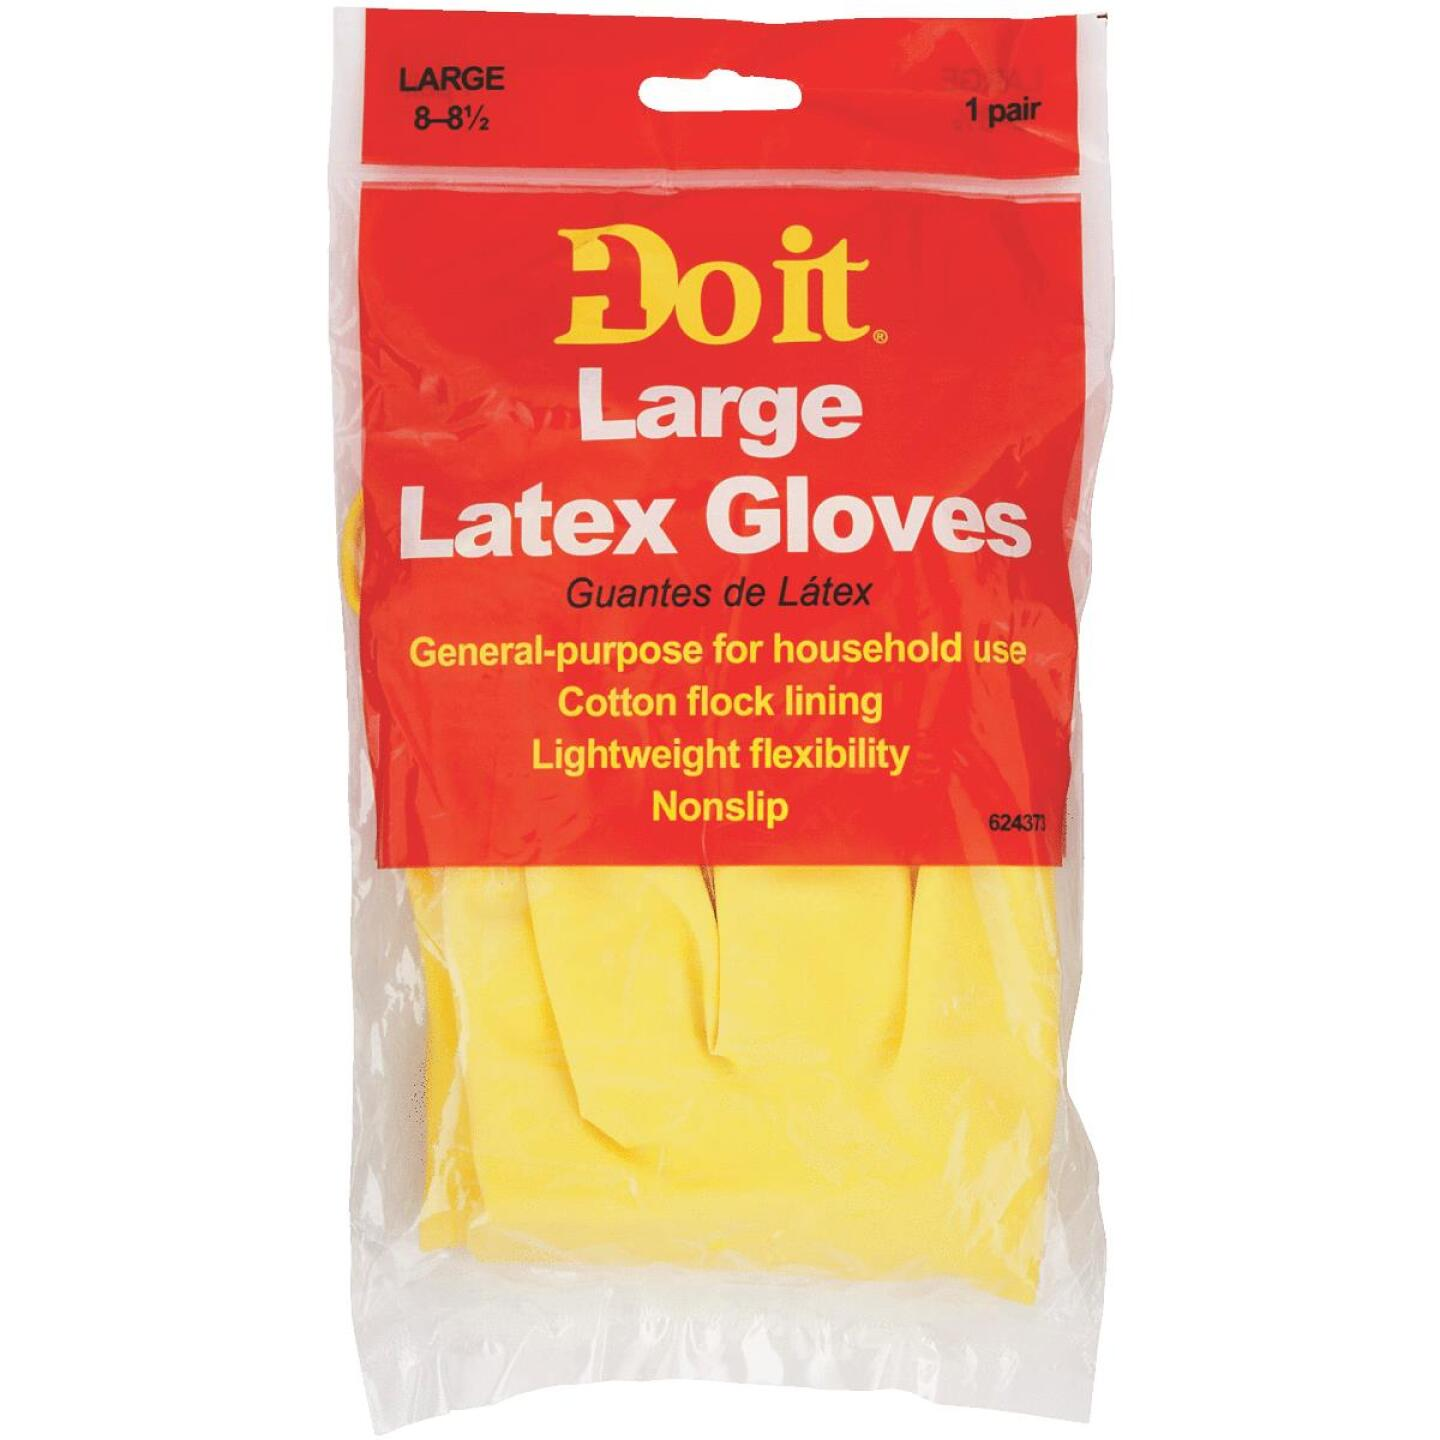 Do it Large Latex Rubber Glove Image 3